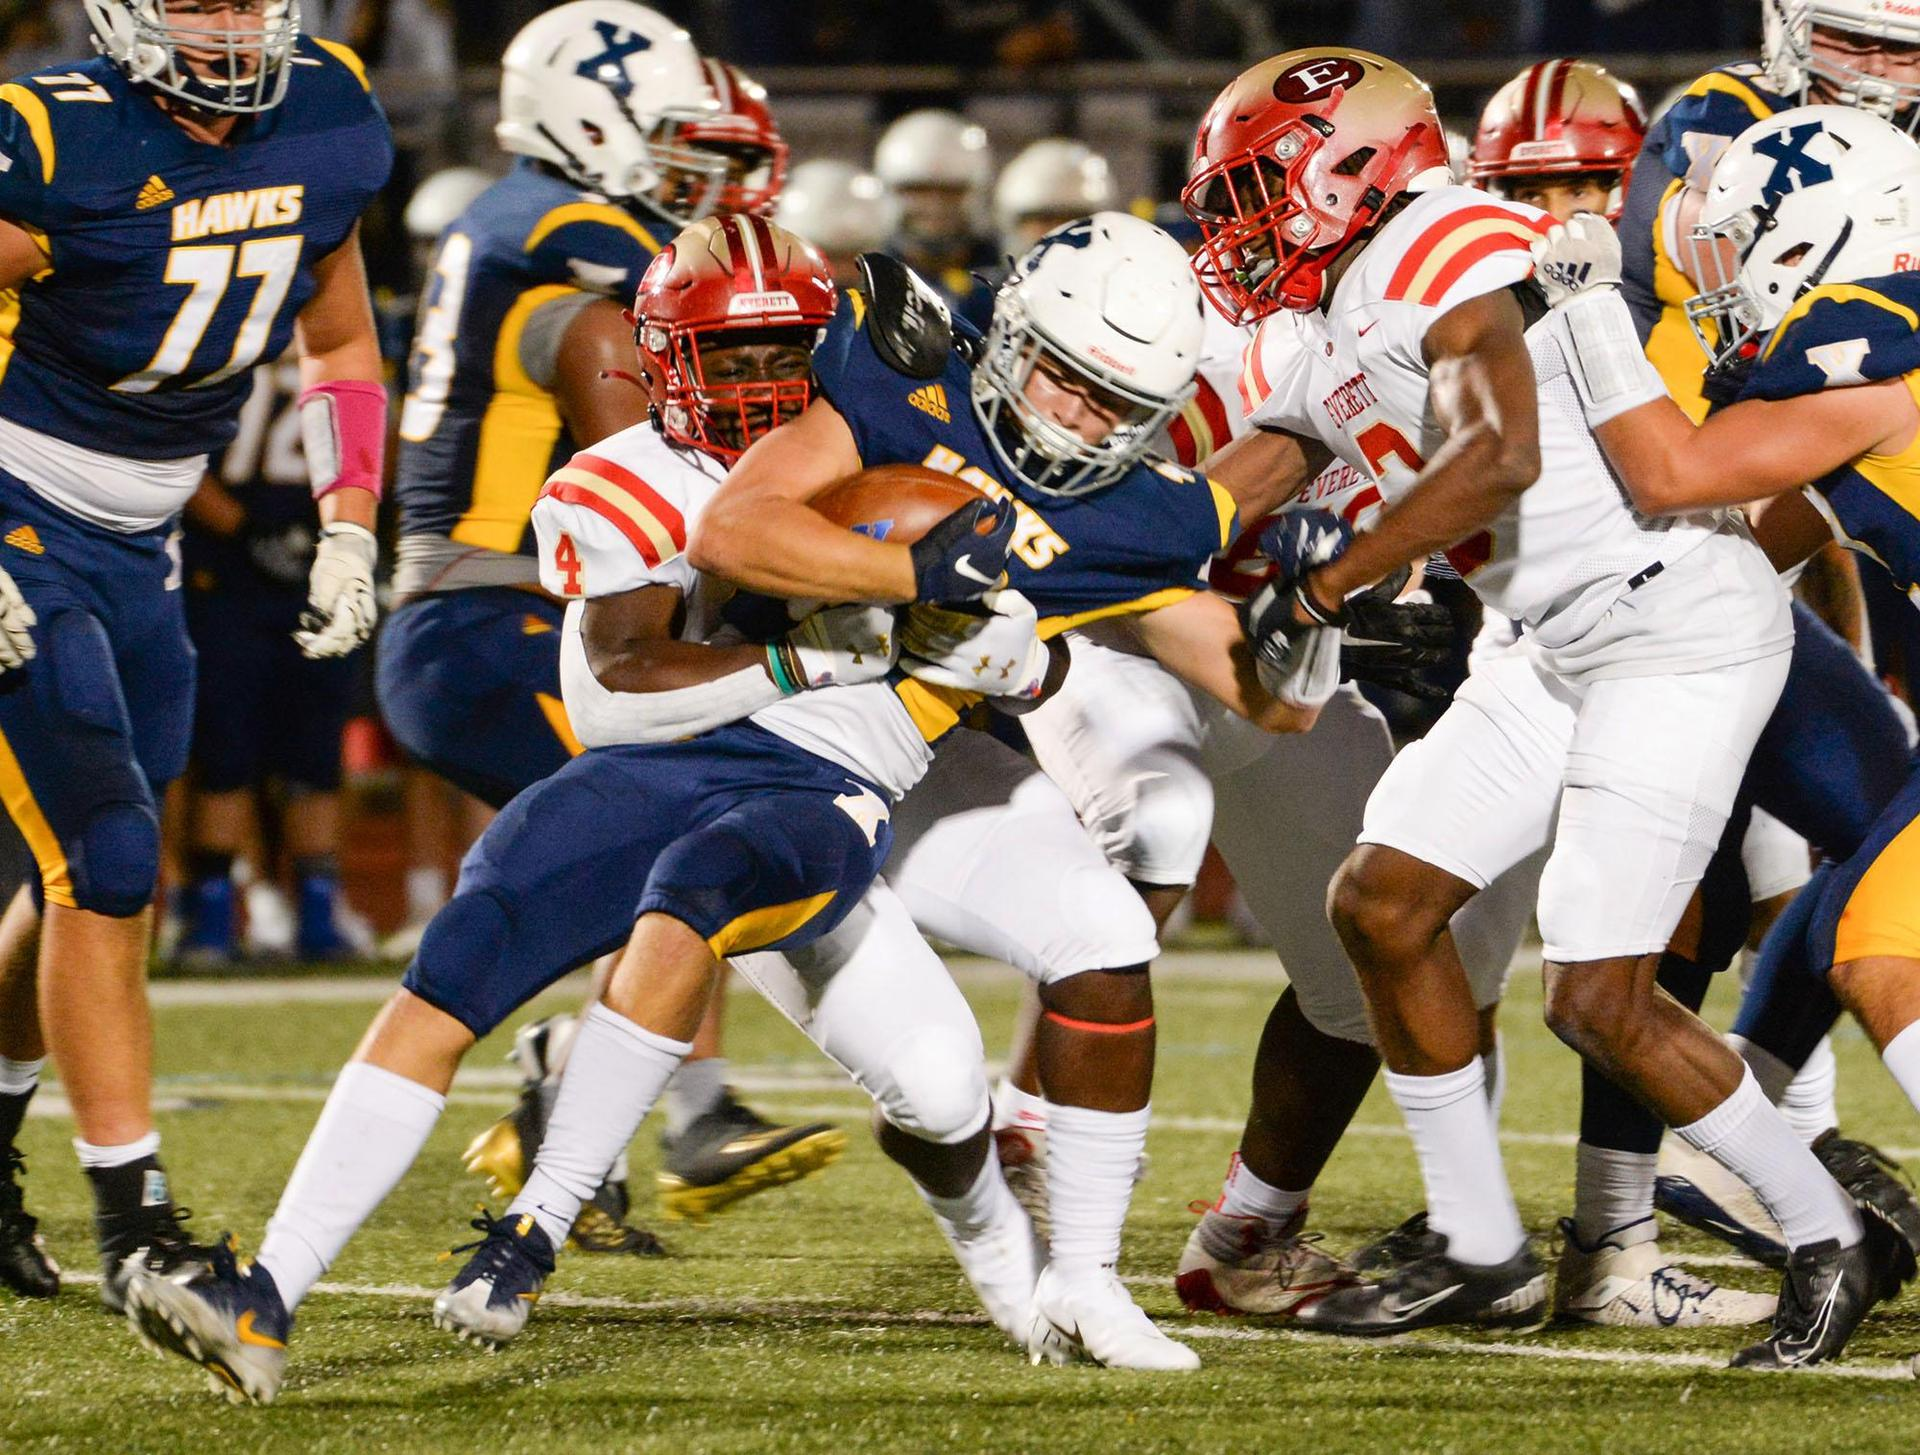 A slew of EHS defenders make a tackle